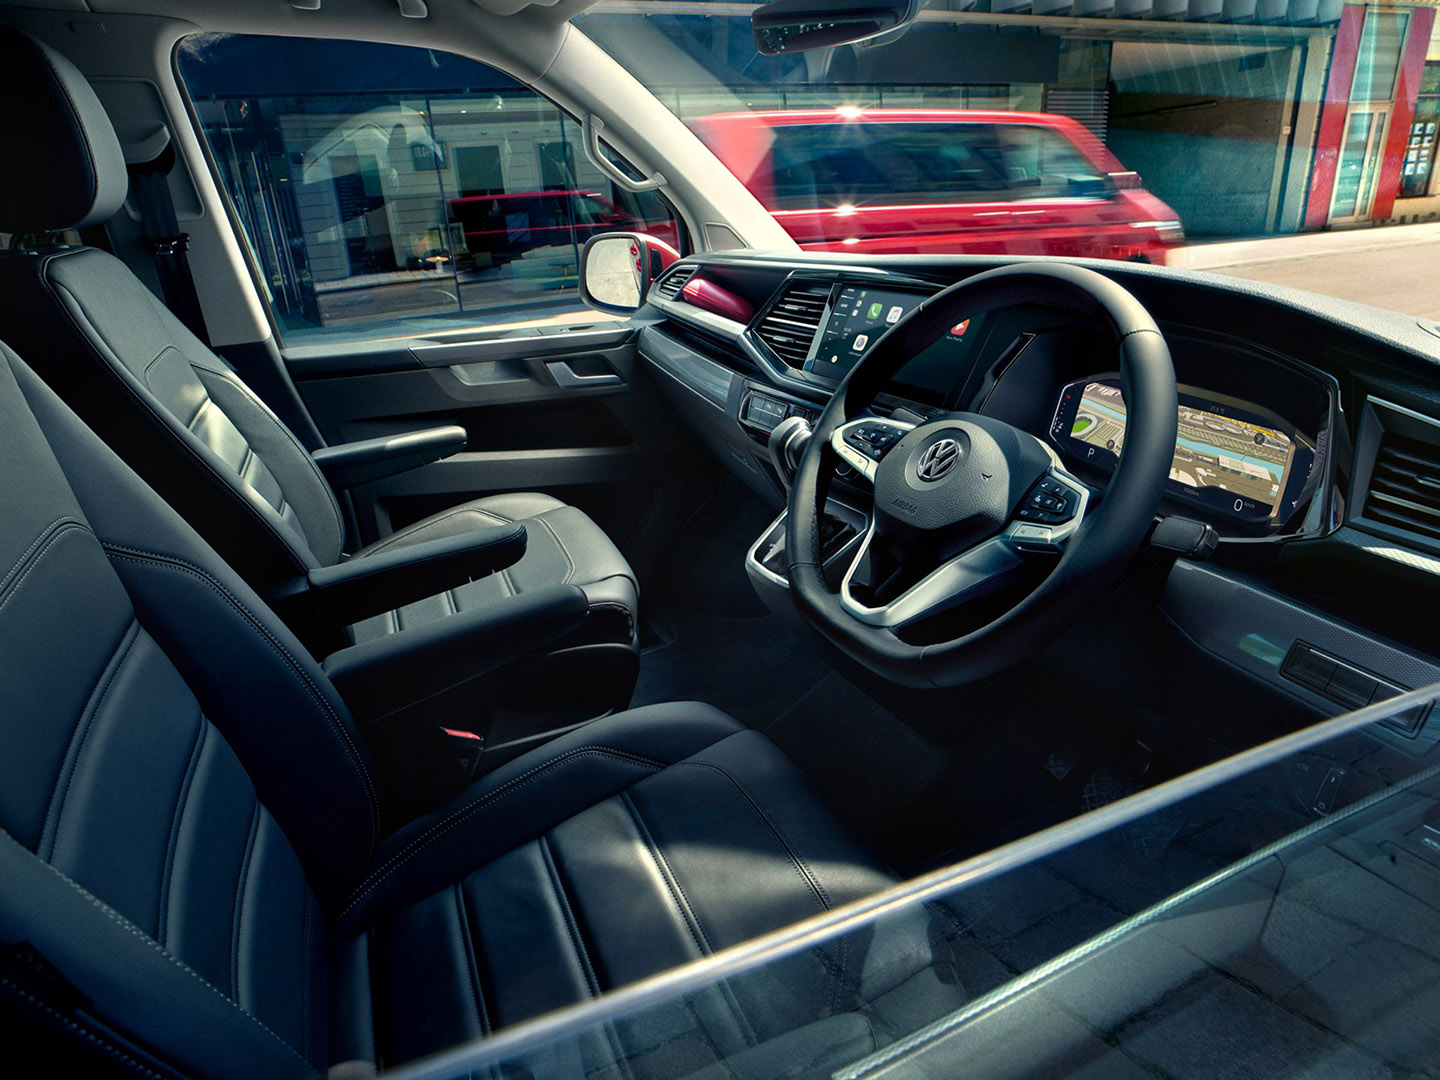 The creature comforts Drivability Image